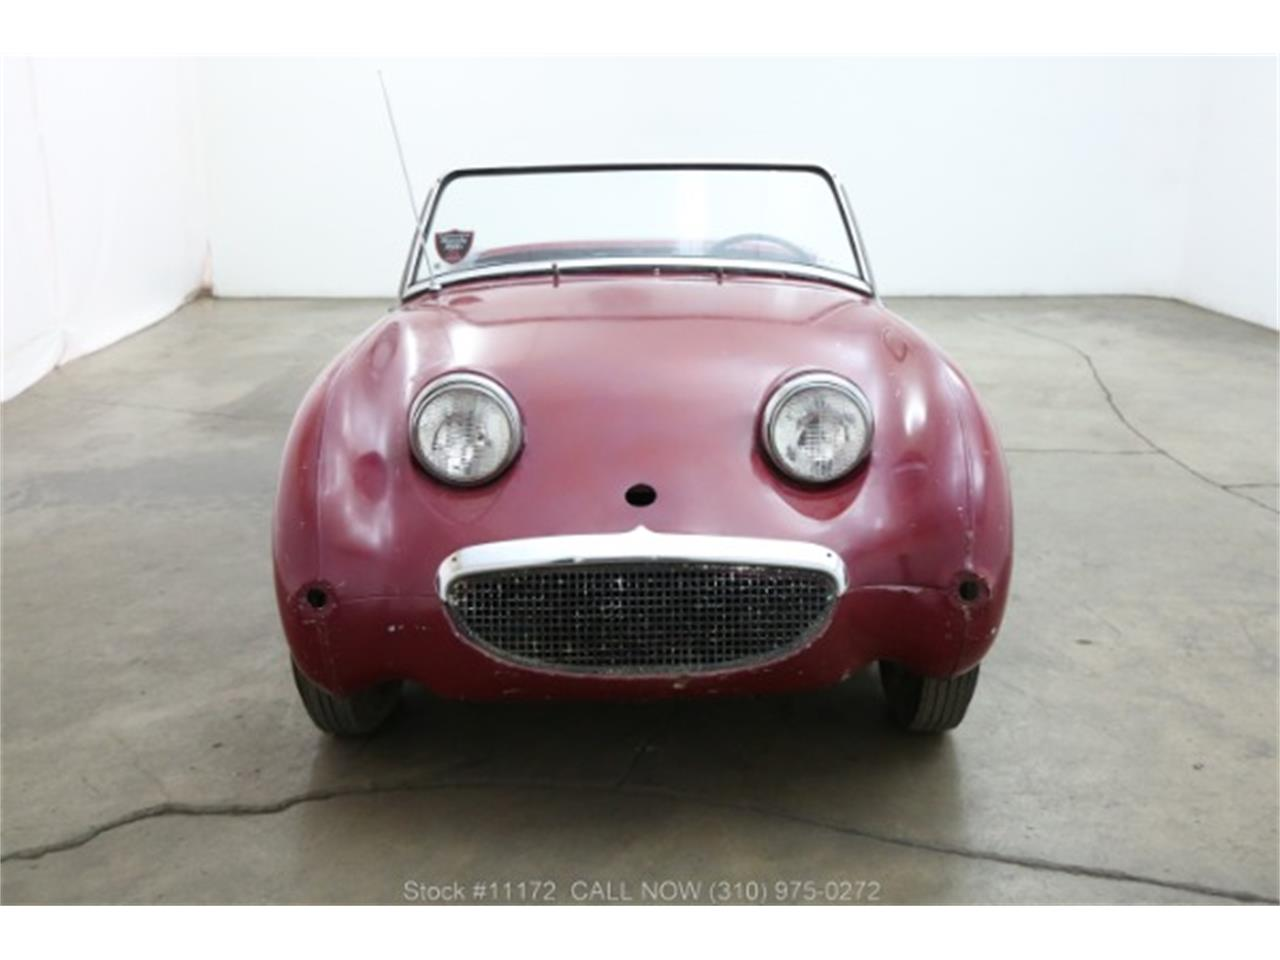 Large Picture of '61 Bugeye Sprite - QOT0